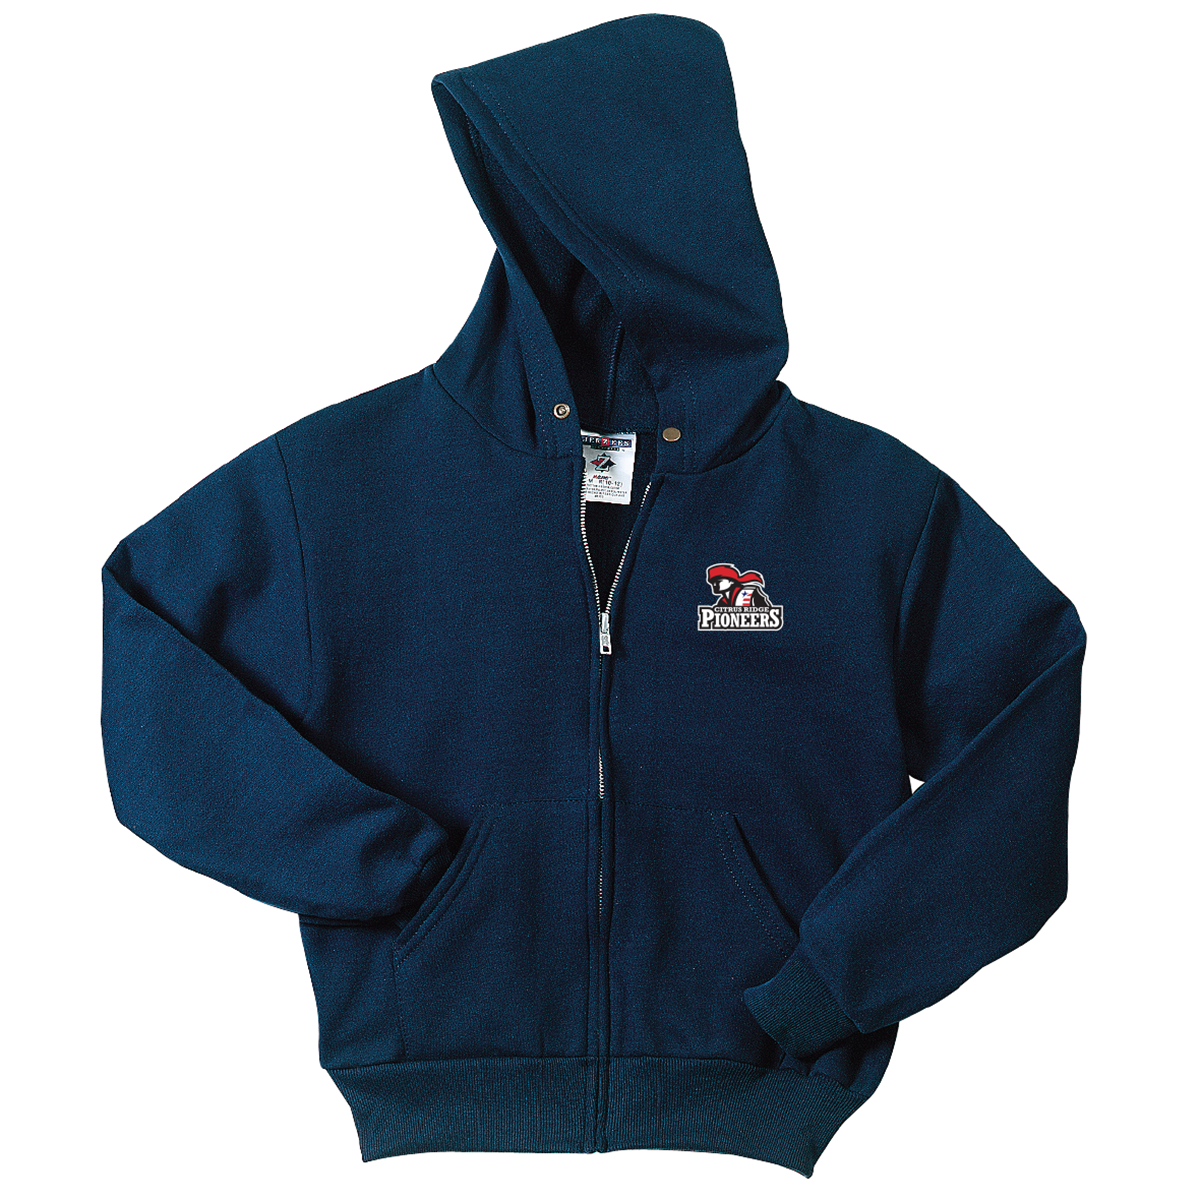 Citrus Ridge Full Zipper Hooded Sweatshirt (Youth and Adult sizes) - Navy - (ALL GRADES)